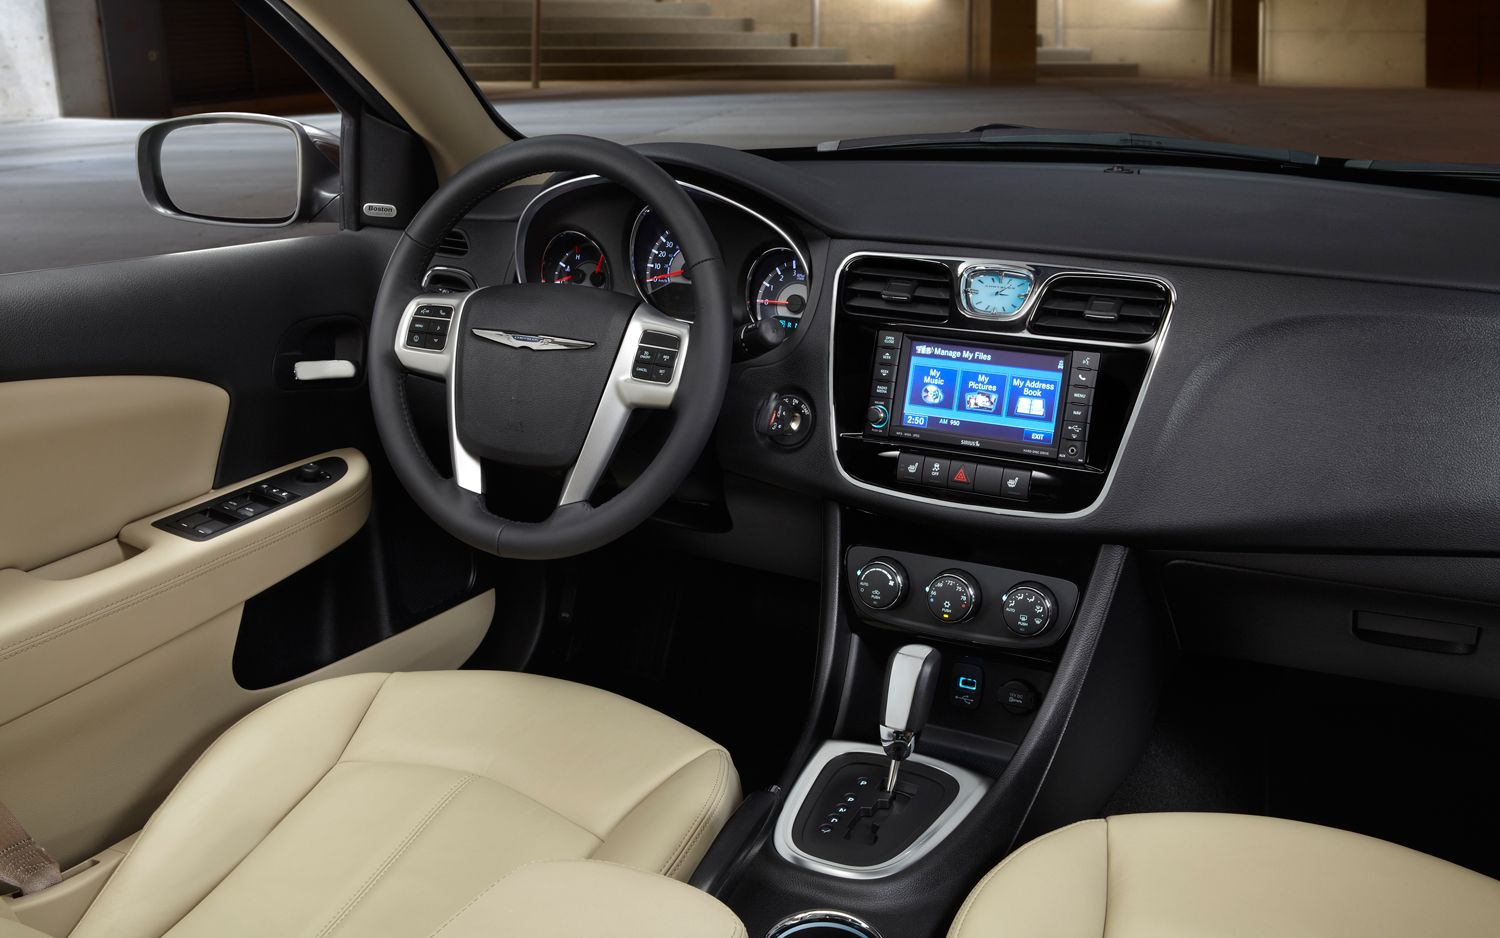 2014 Chrysler 200 2014 Chrysler 200 Interior Topismagazine With